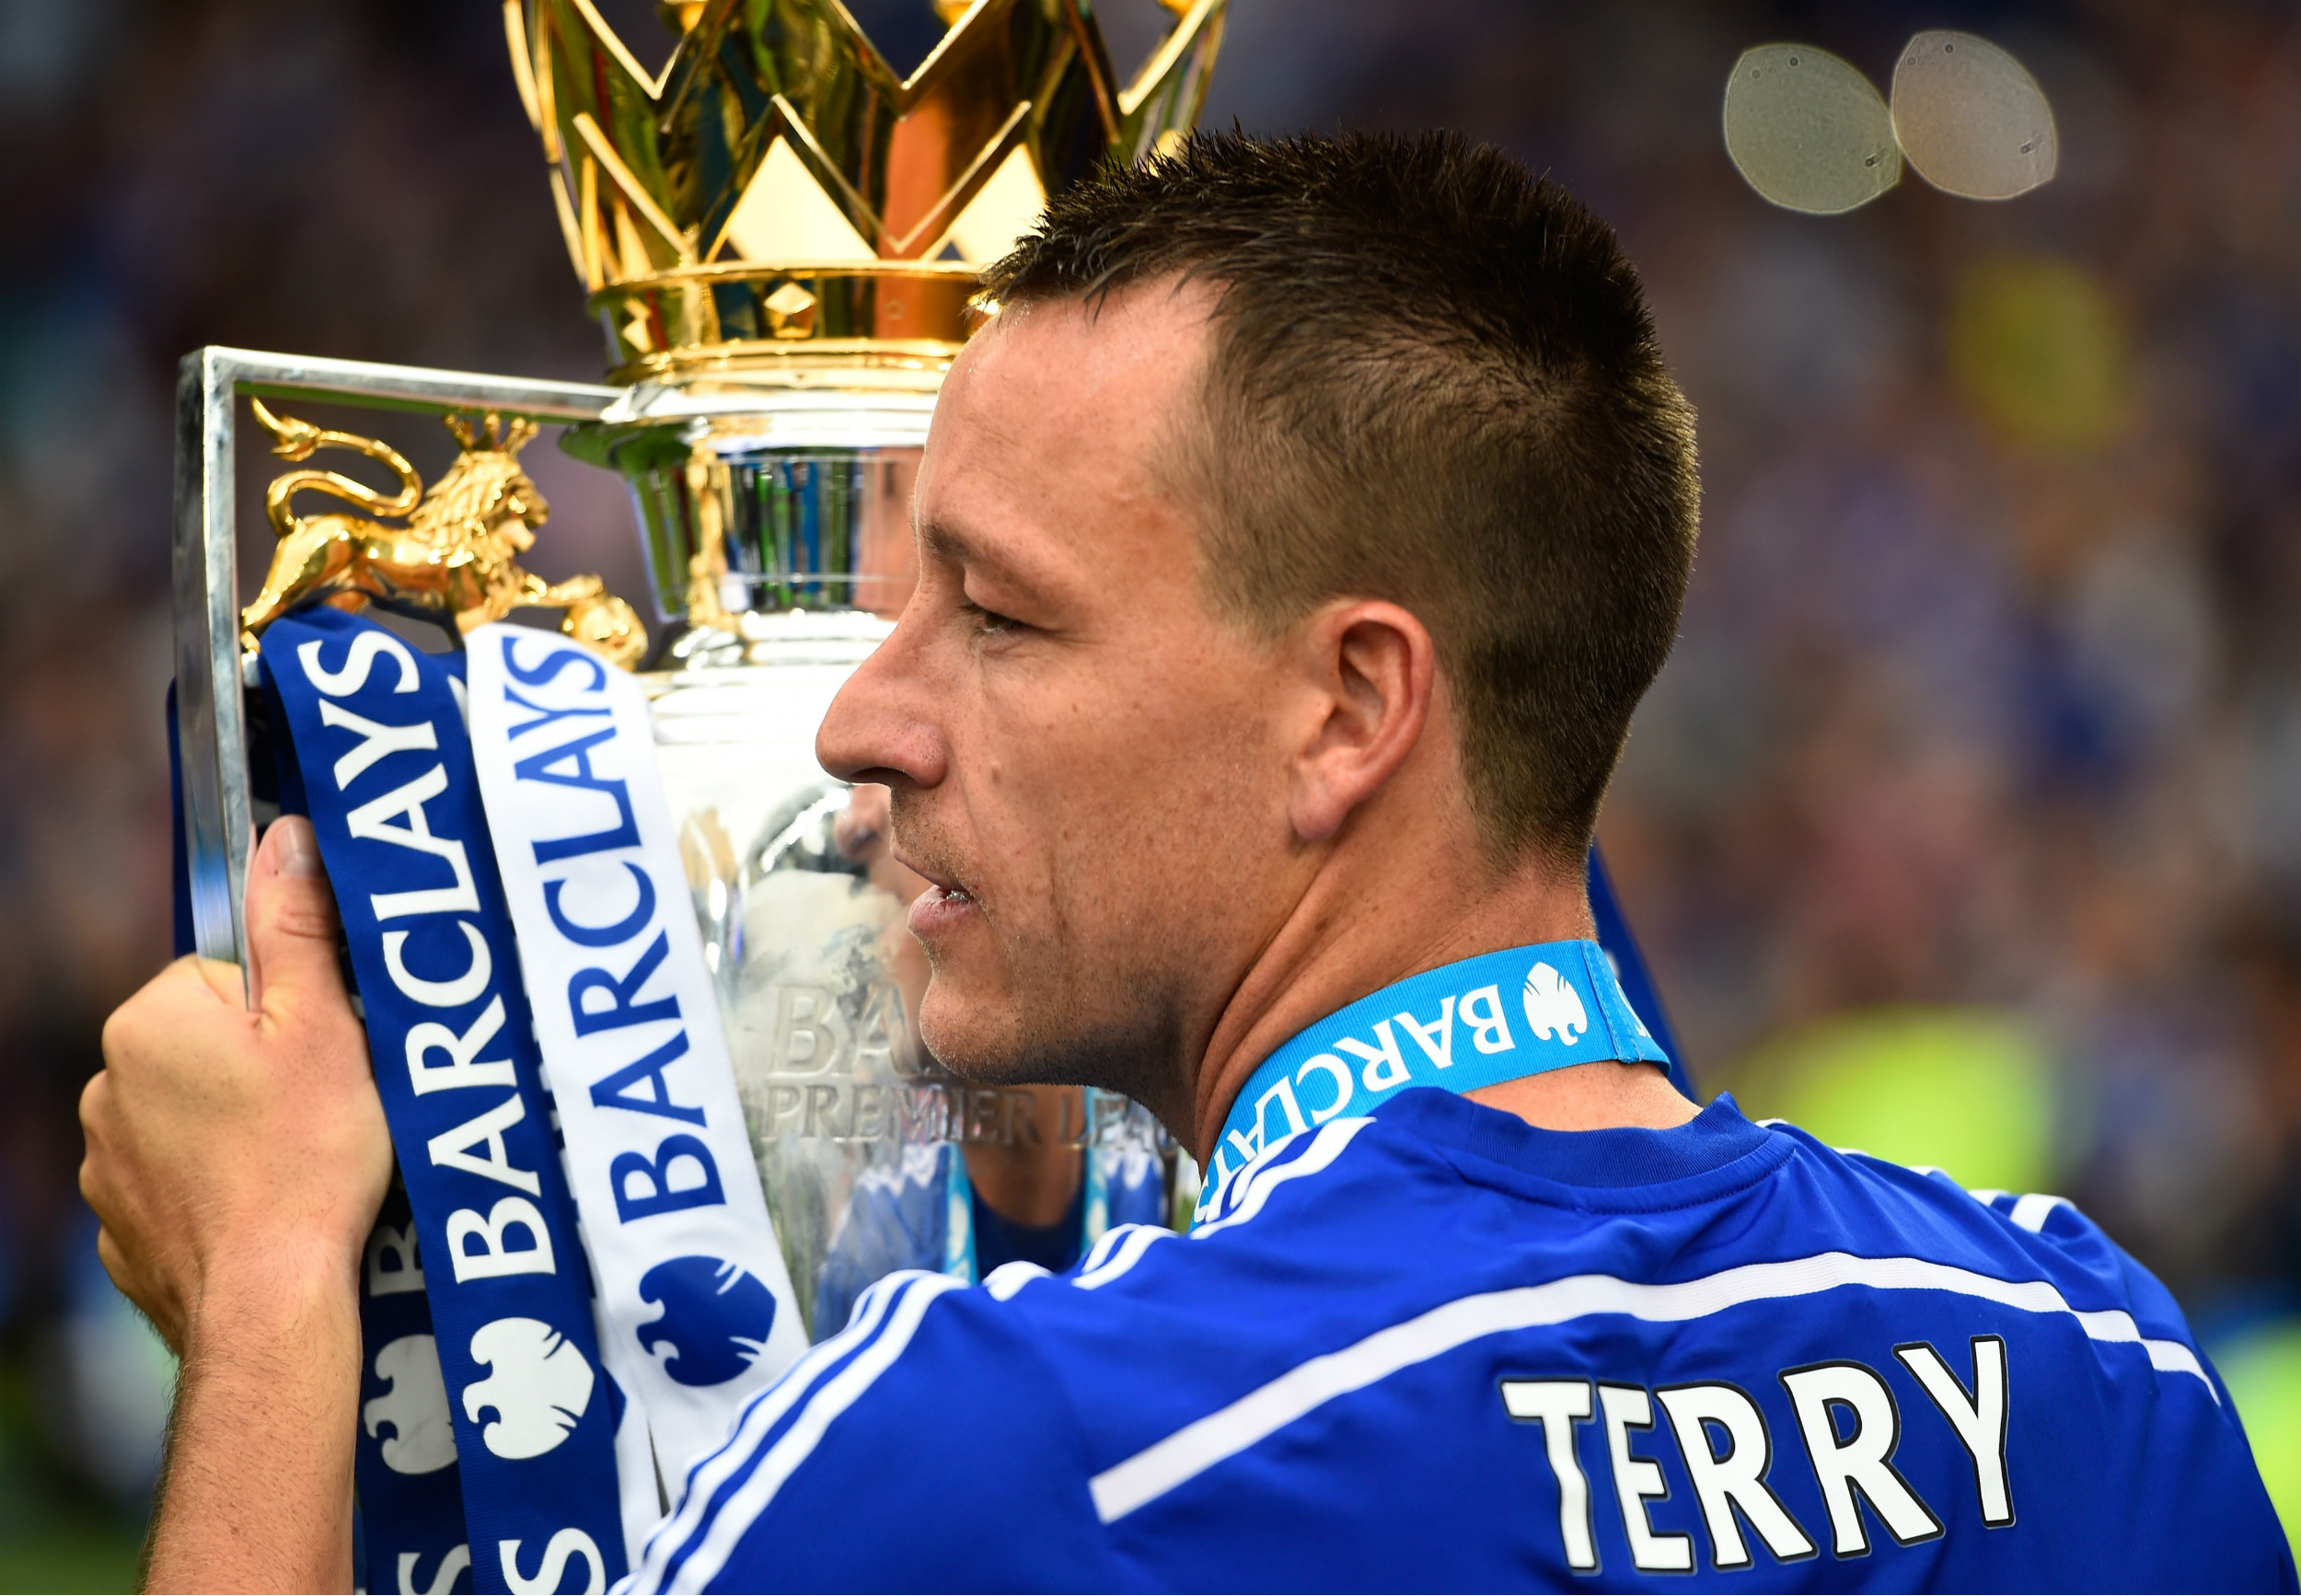 Farewell John Terry A man who embo s Chelsea like no other